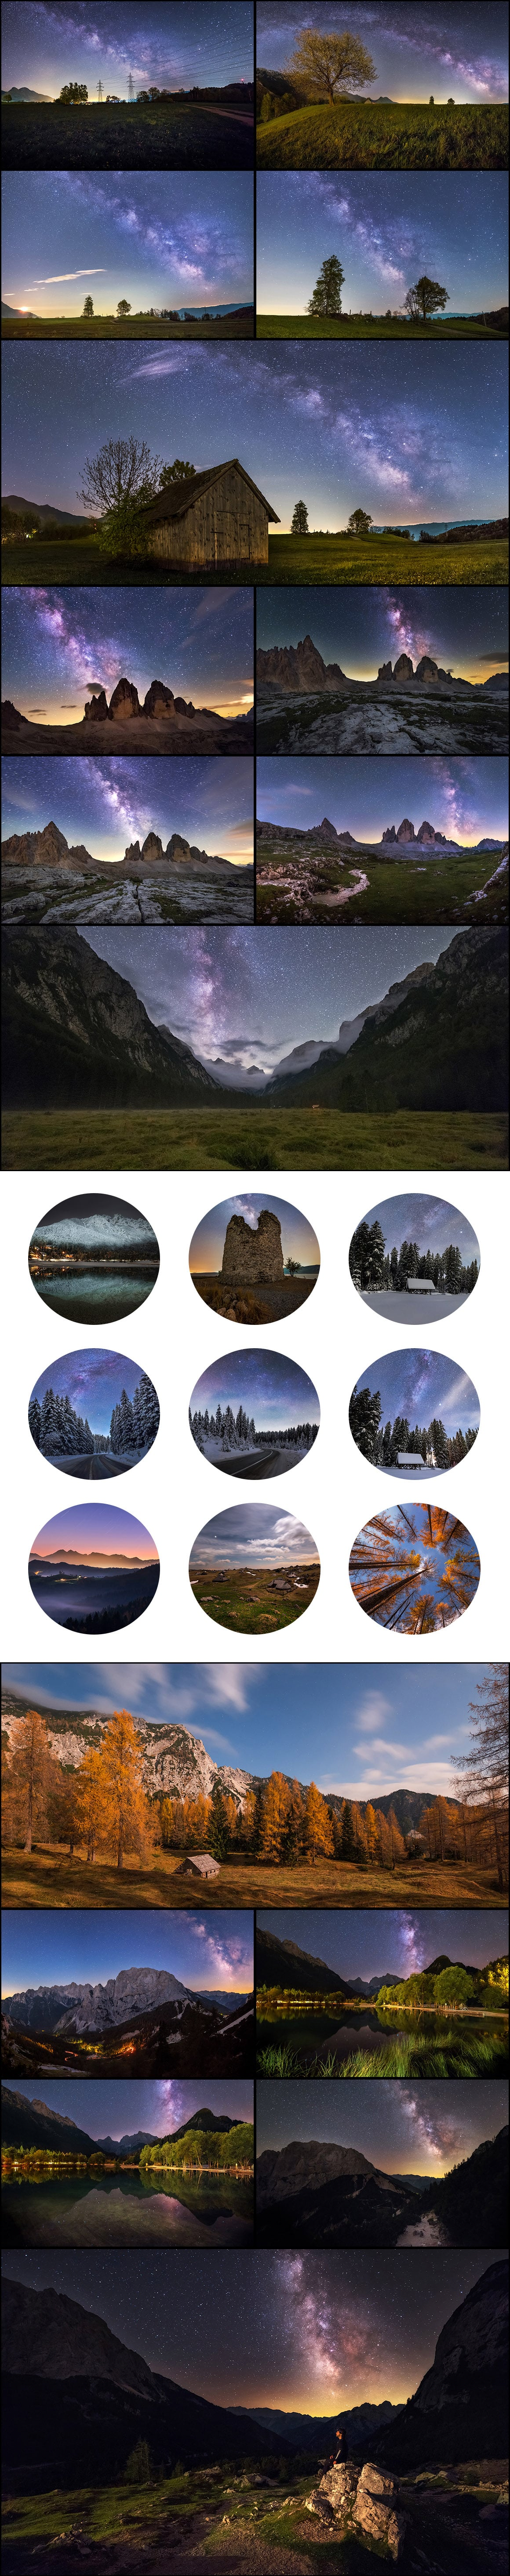 500+ Stock Images. Ultimate Photo Bundle  – $59 - PREVIEW nightscapes